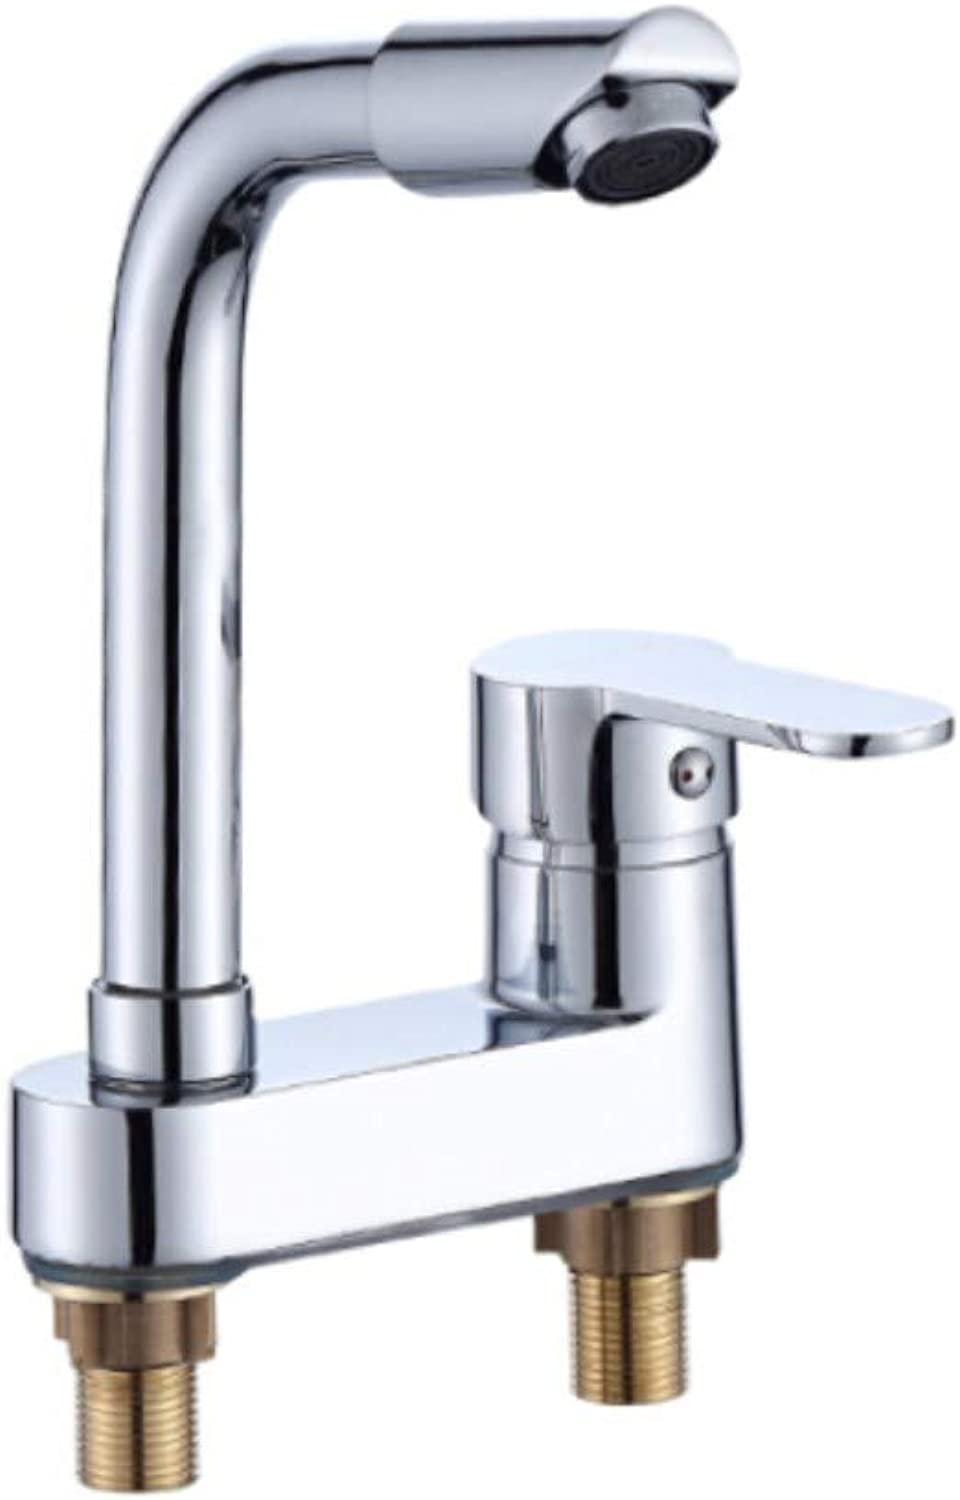 Faucet Waste Mono Spoutbathroom Faucet Hot and Cold Copper Mixing Valve 360 ??Degree redating Double Hole Bathroom Cabinet Basin Faucet